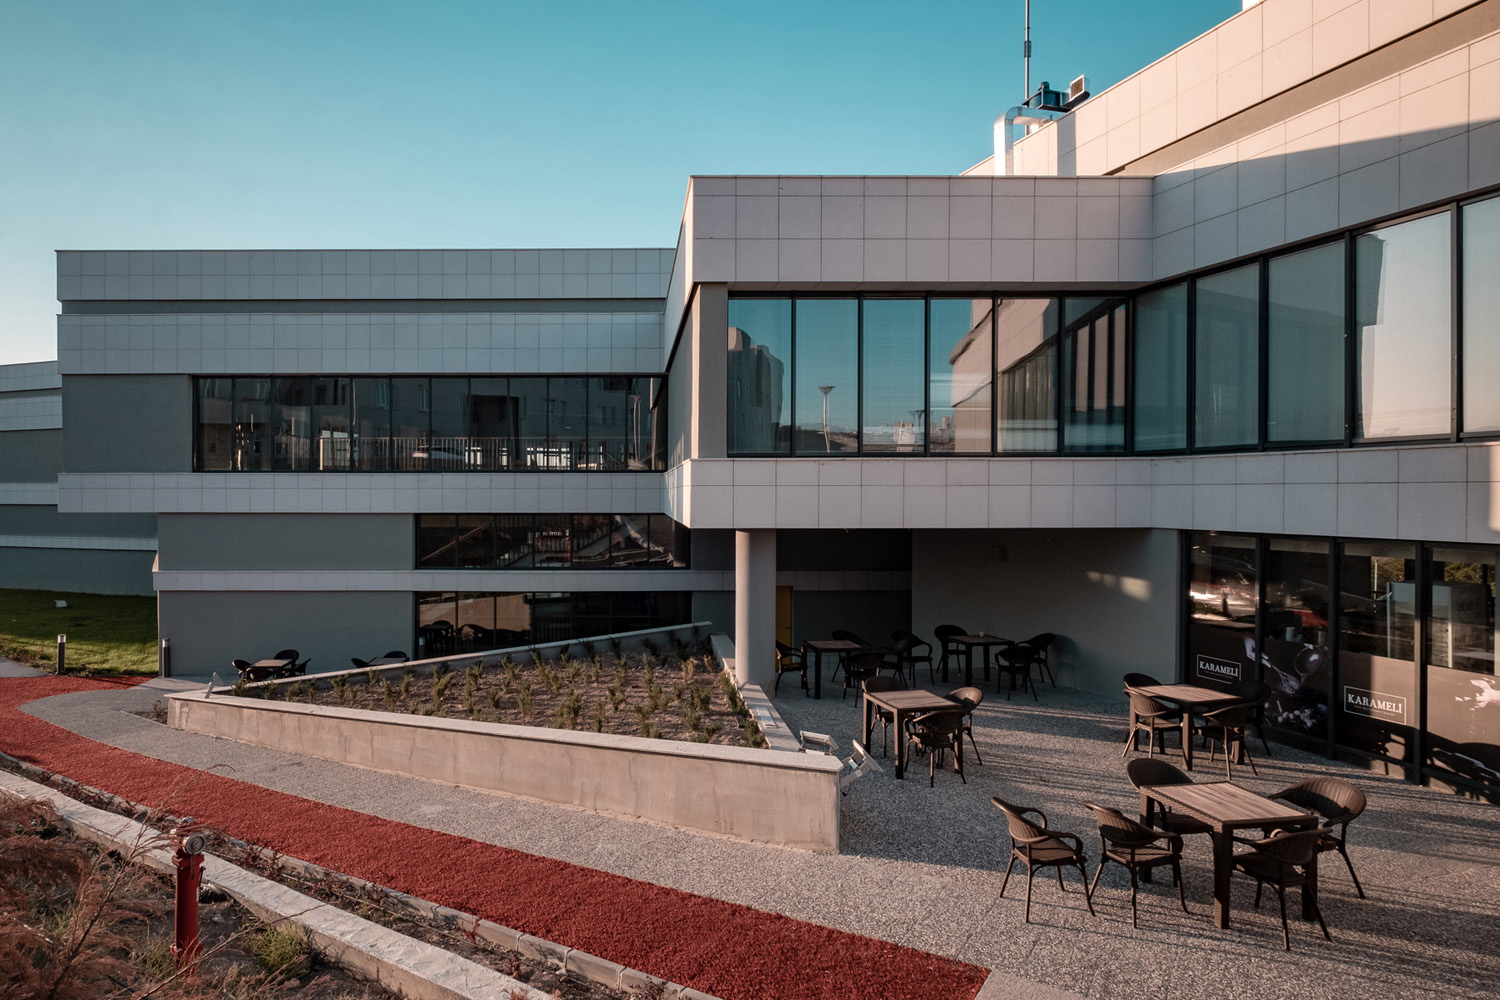 Adjacent outdoor spaces: Running Track passing by and Cafe covered by offices Orhan Kolukısa, Yerçekim